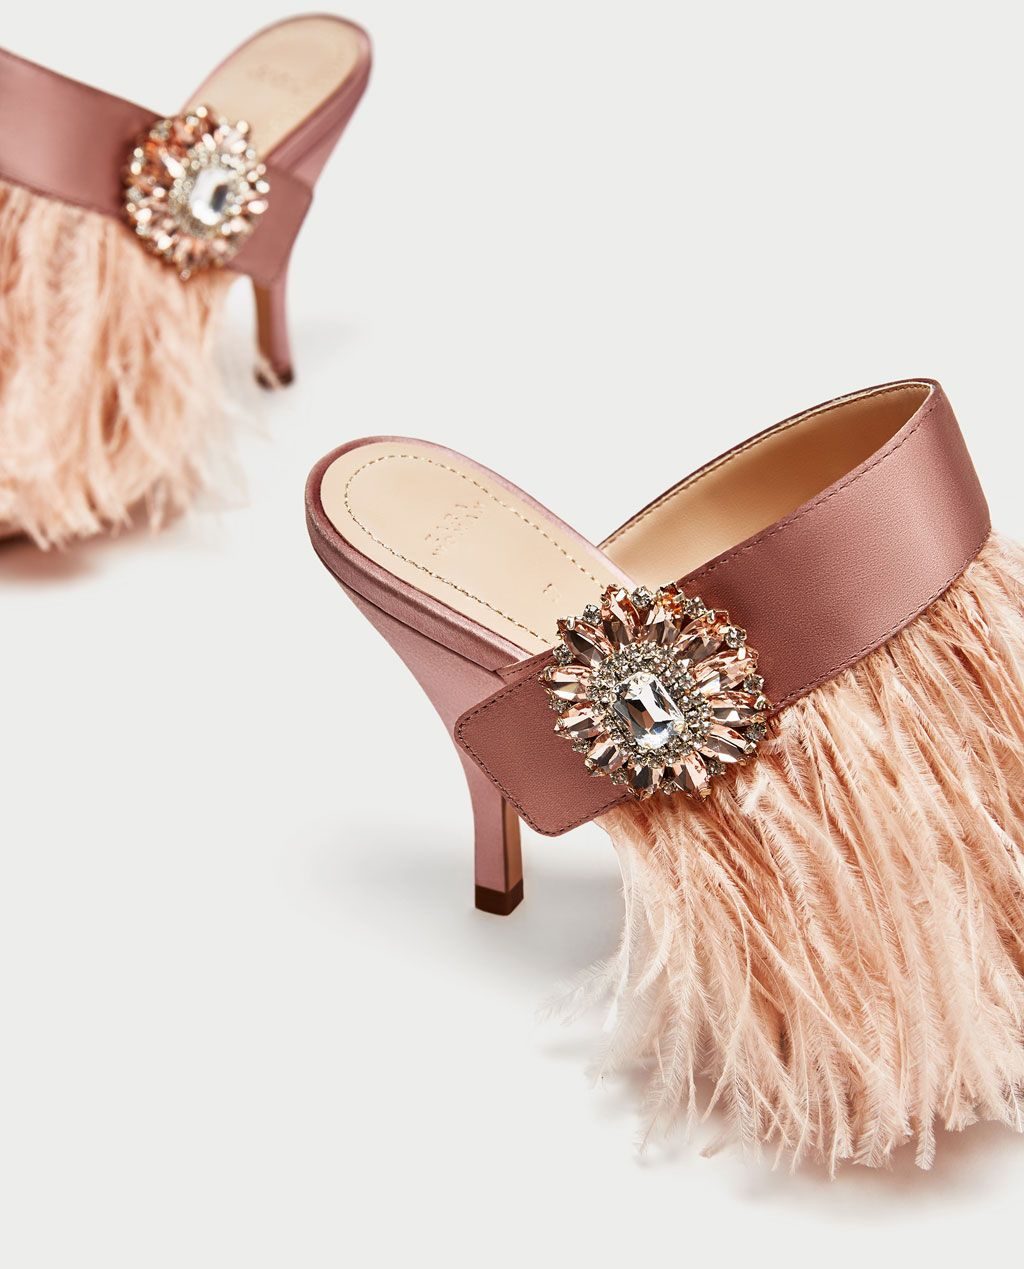 371c291e721 ZARA - WOMAN - HIGH HEEL MULES WITH FEATHER AND BROOCH DETAIL